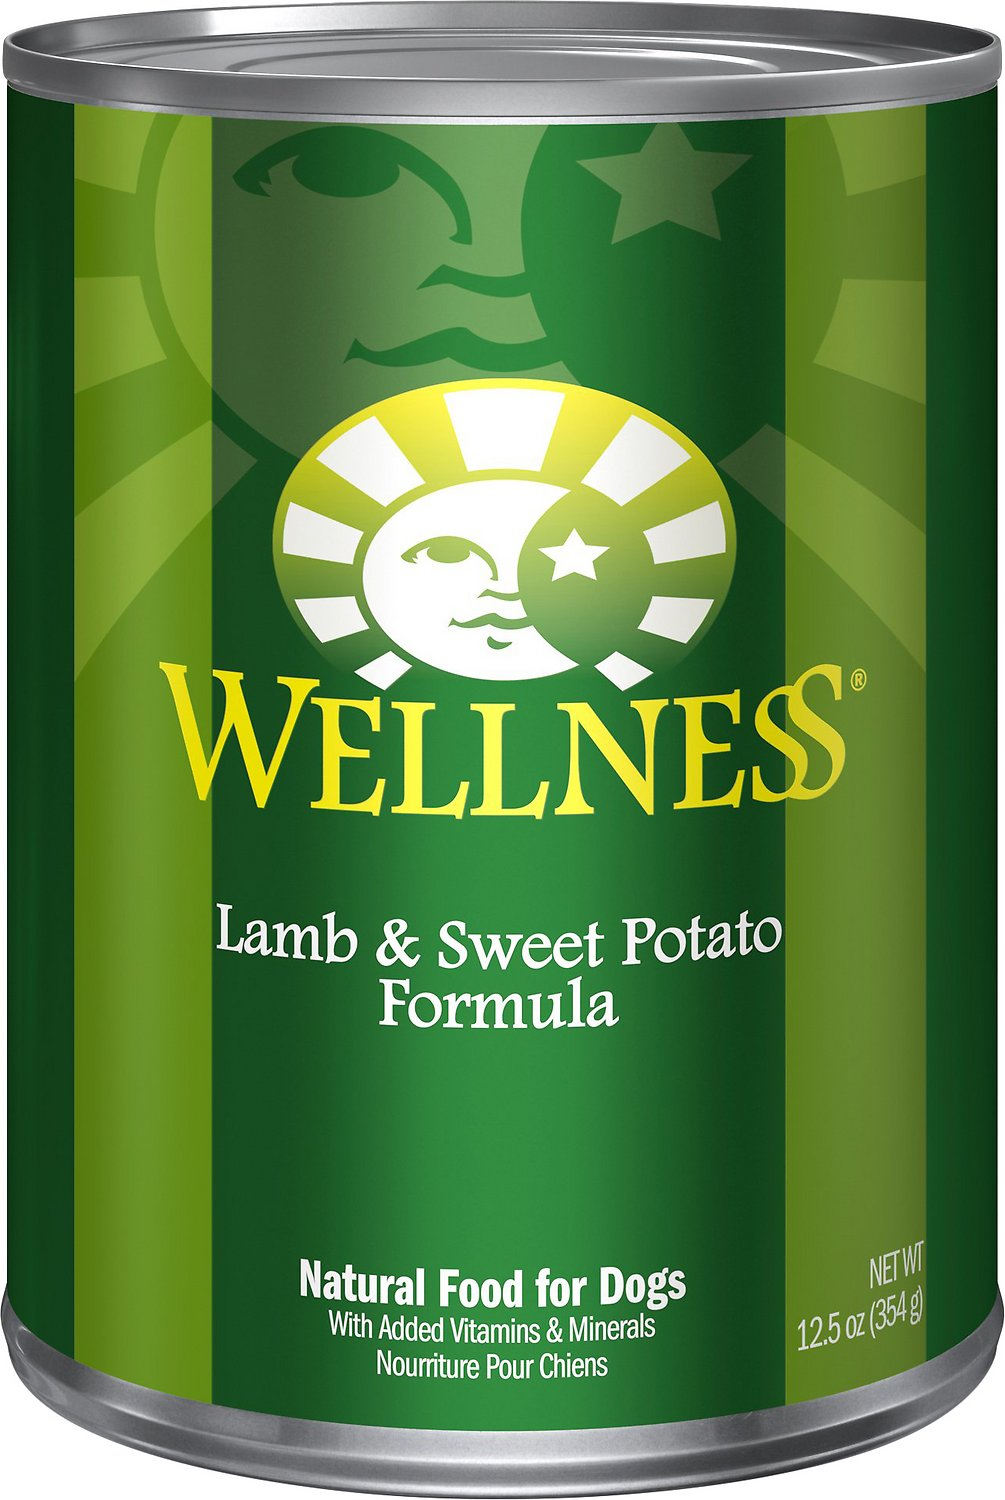 Wellness Complete Health Lamb & Sweet Potato Formula Canned Dog Food